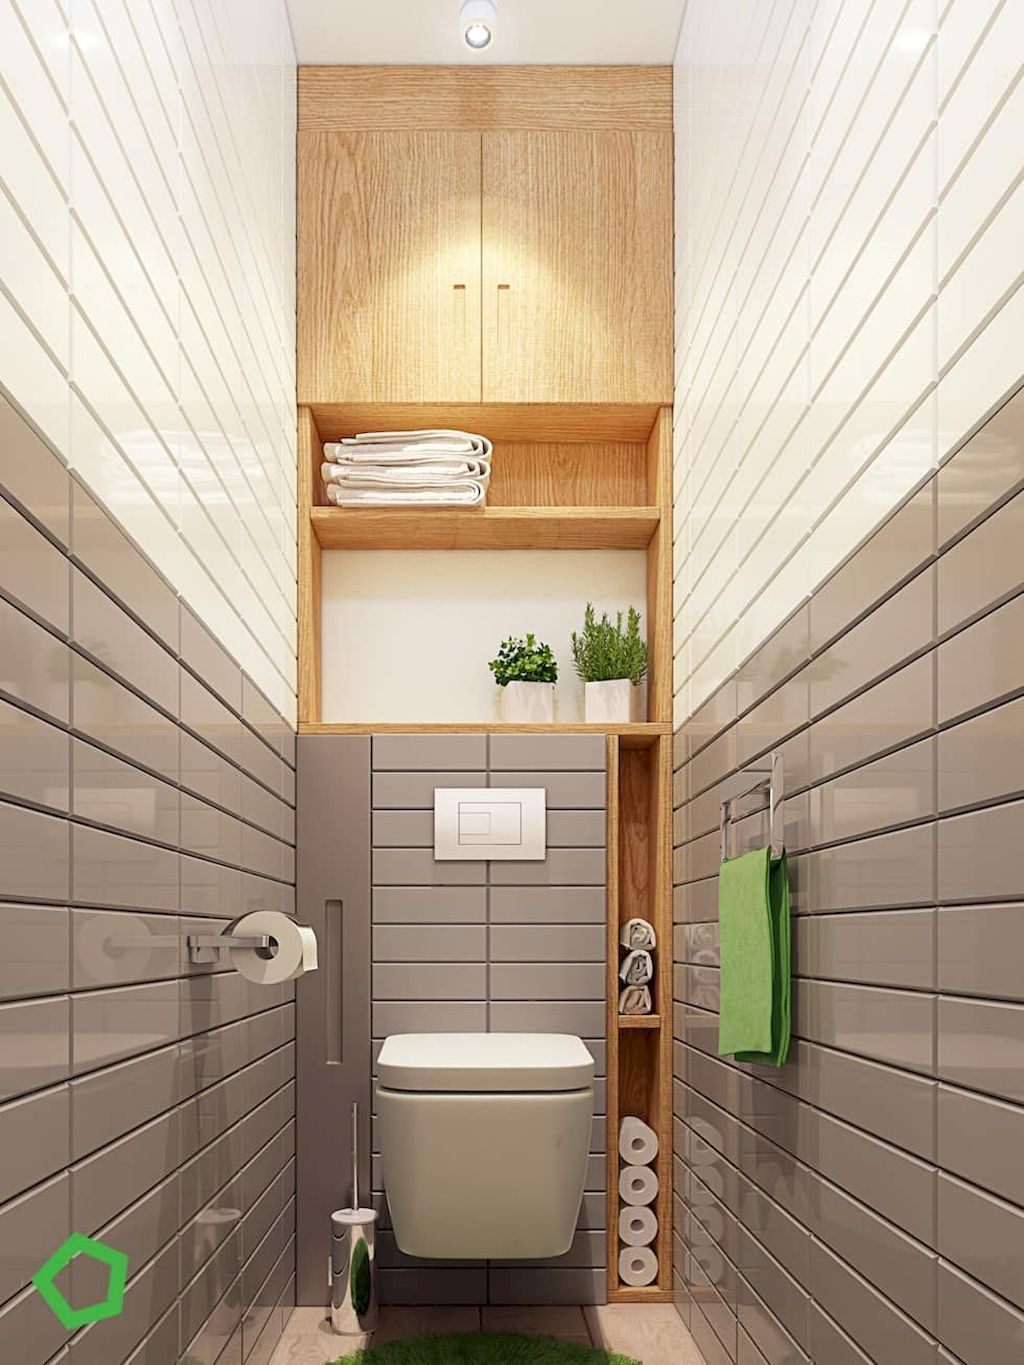 Space Saving Toilet Design for Small Bathroom #smalltoiletroom